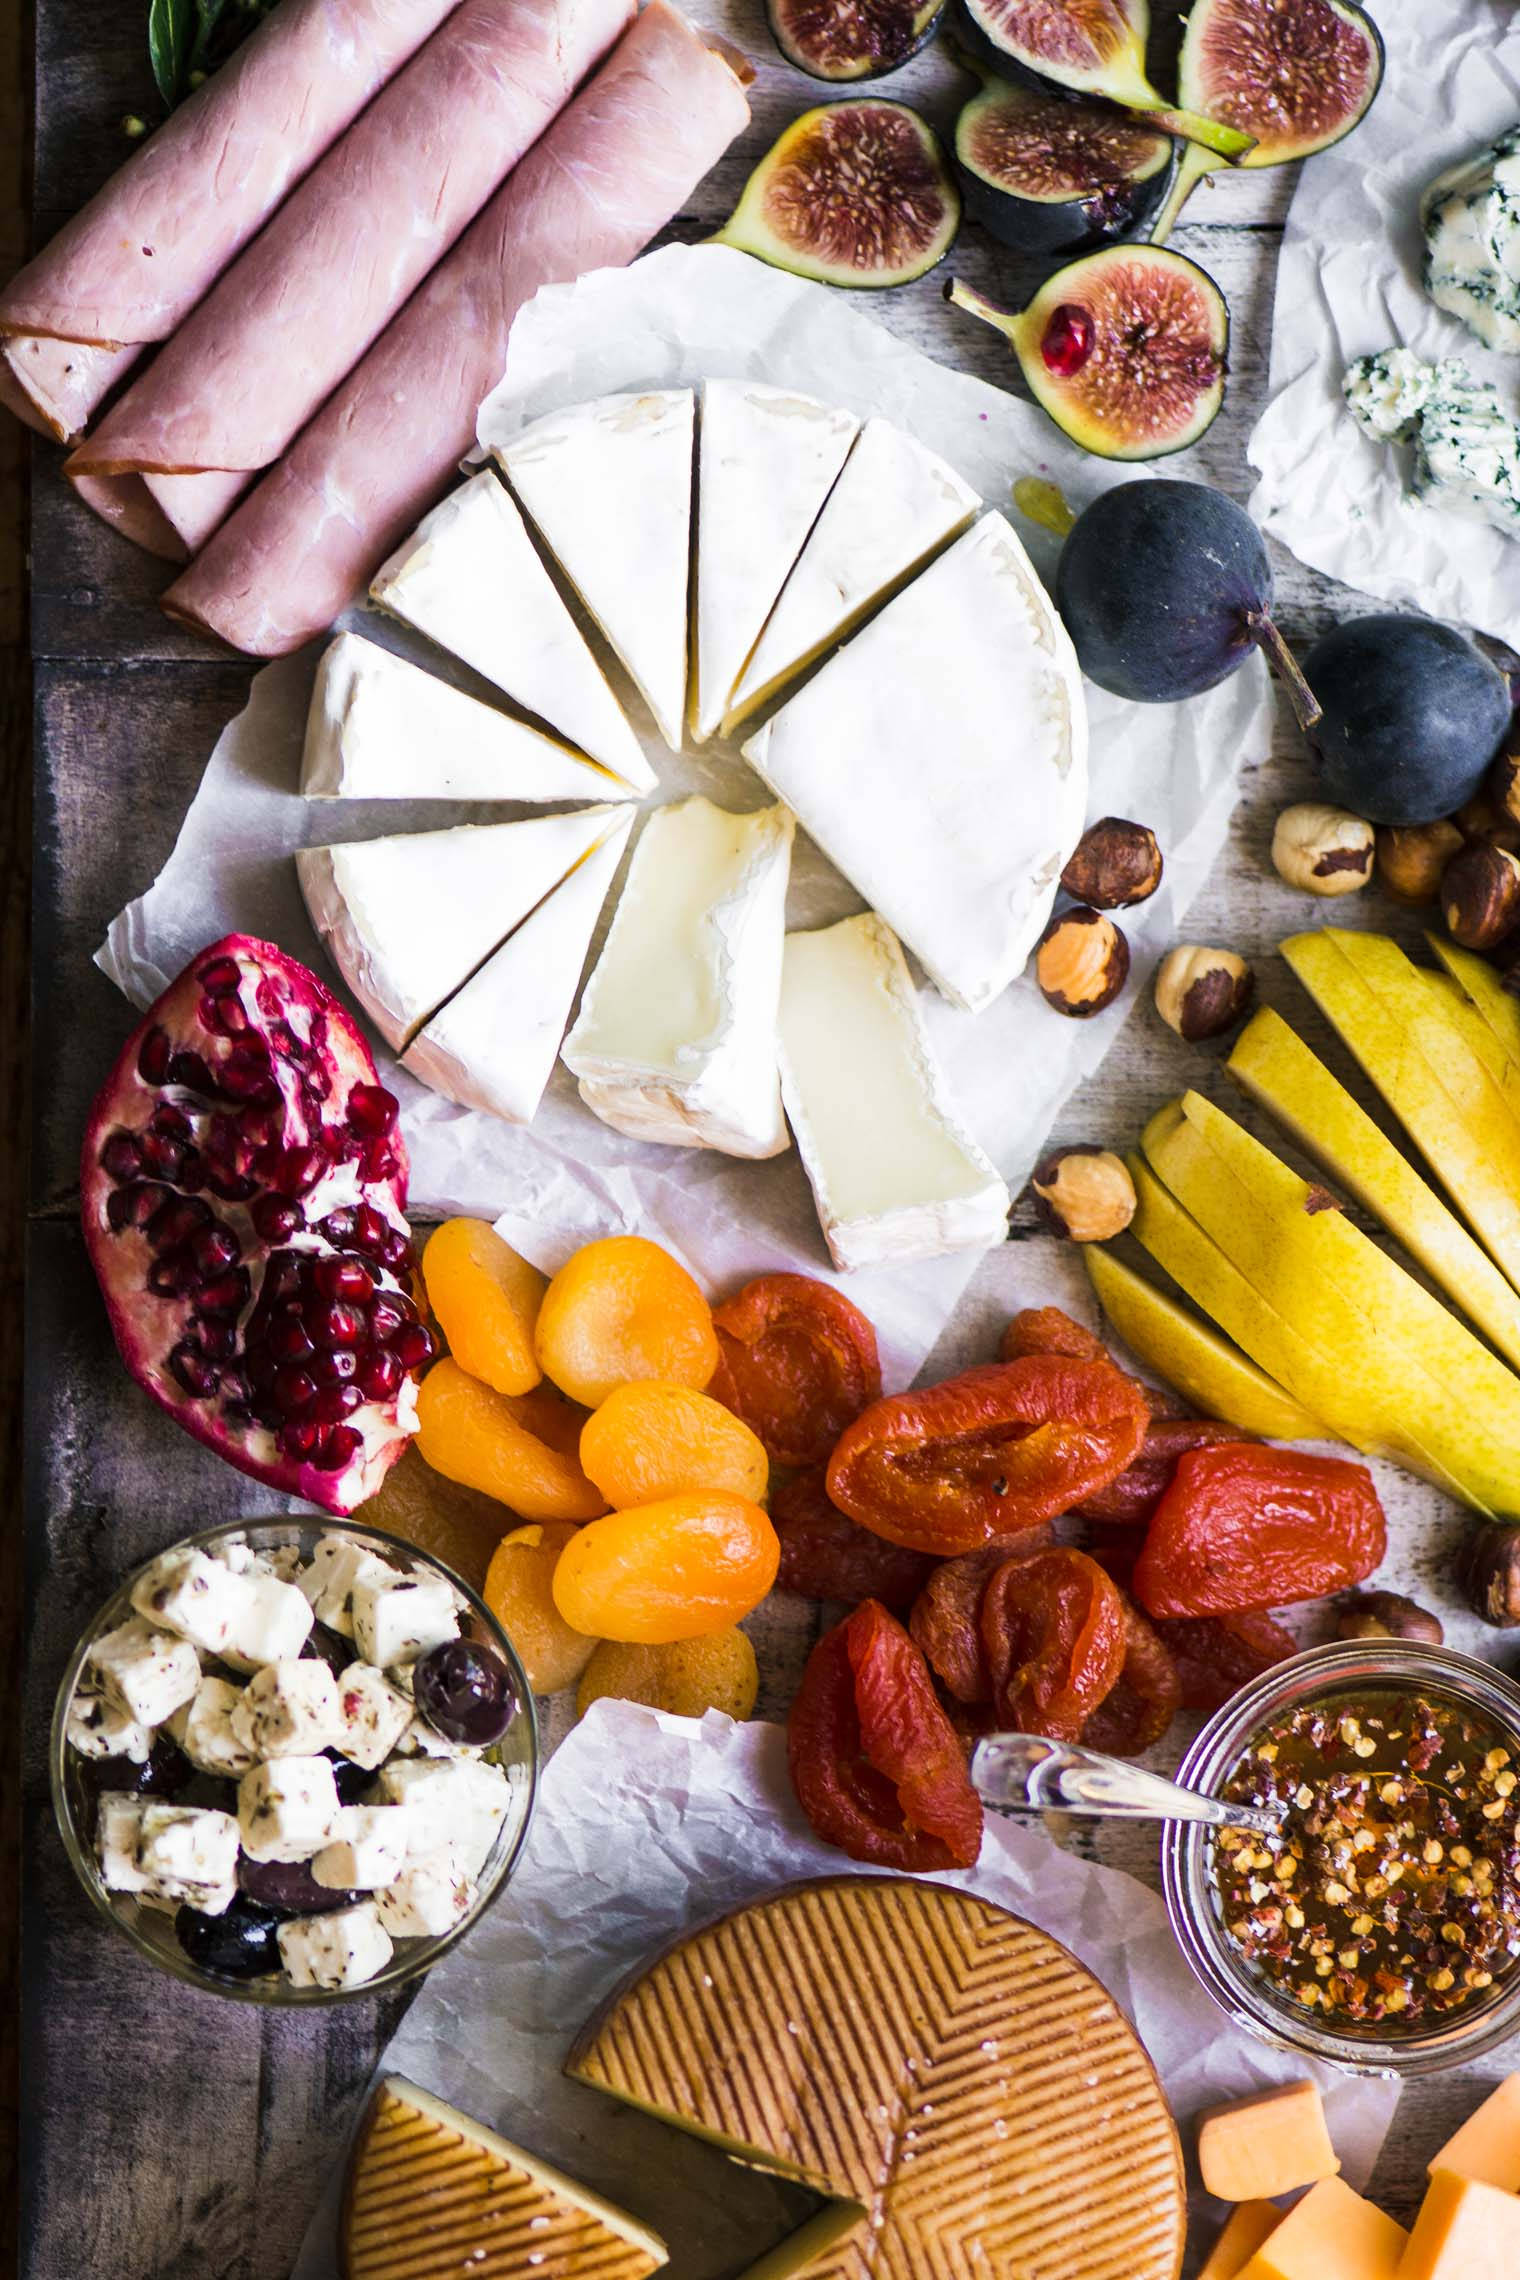 How to make the ultimate cheese board with dried fruits, fresh fruits, nuts, and cheeses